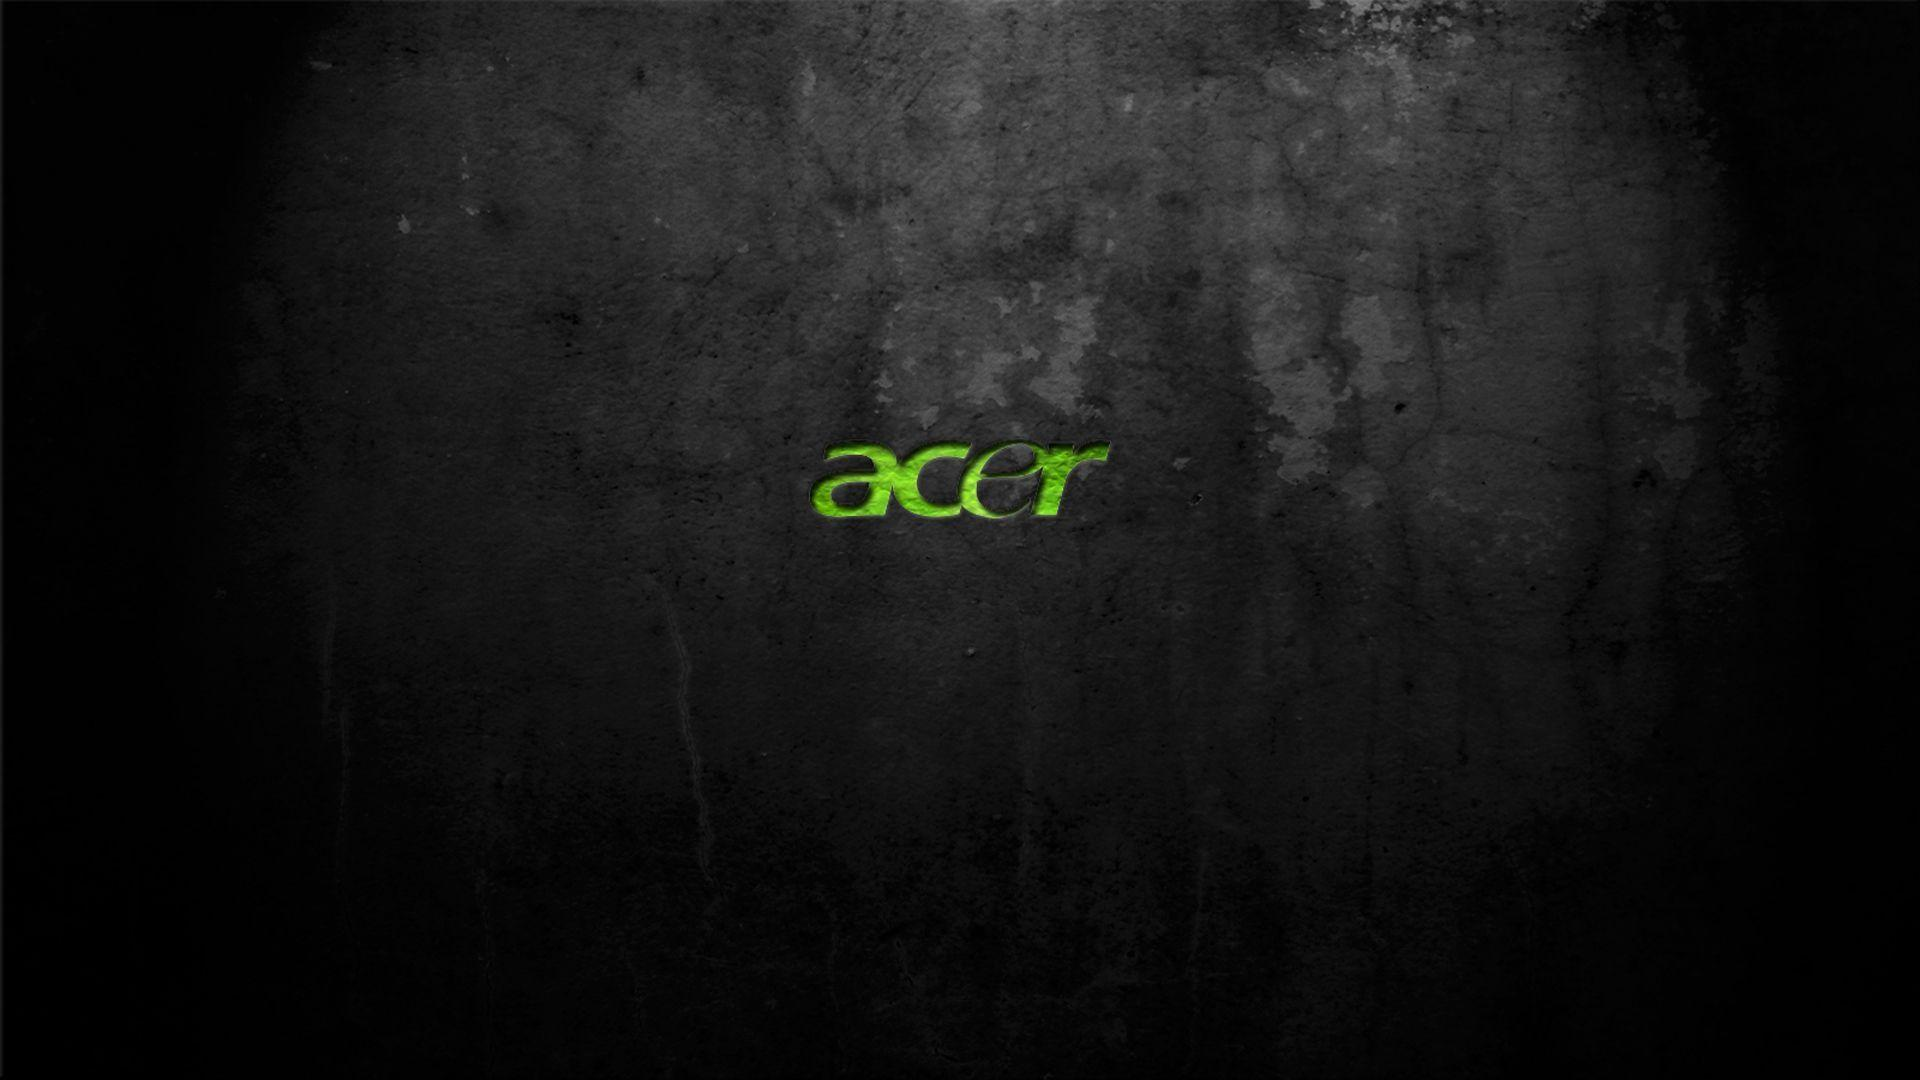 Images For Acer Wallpaper Hd